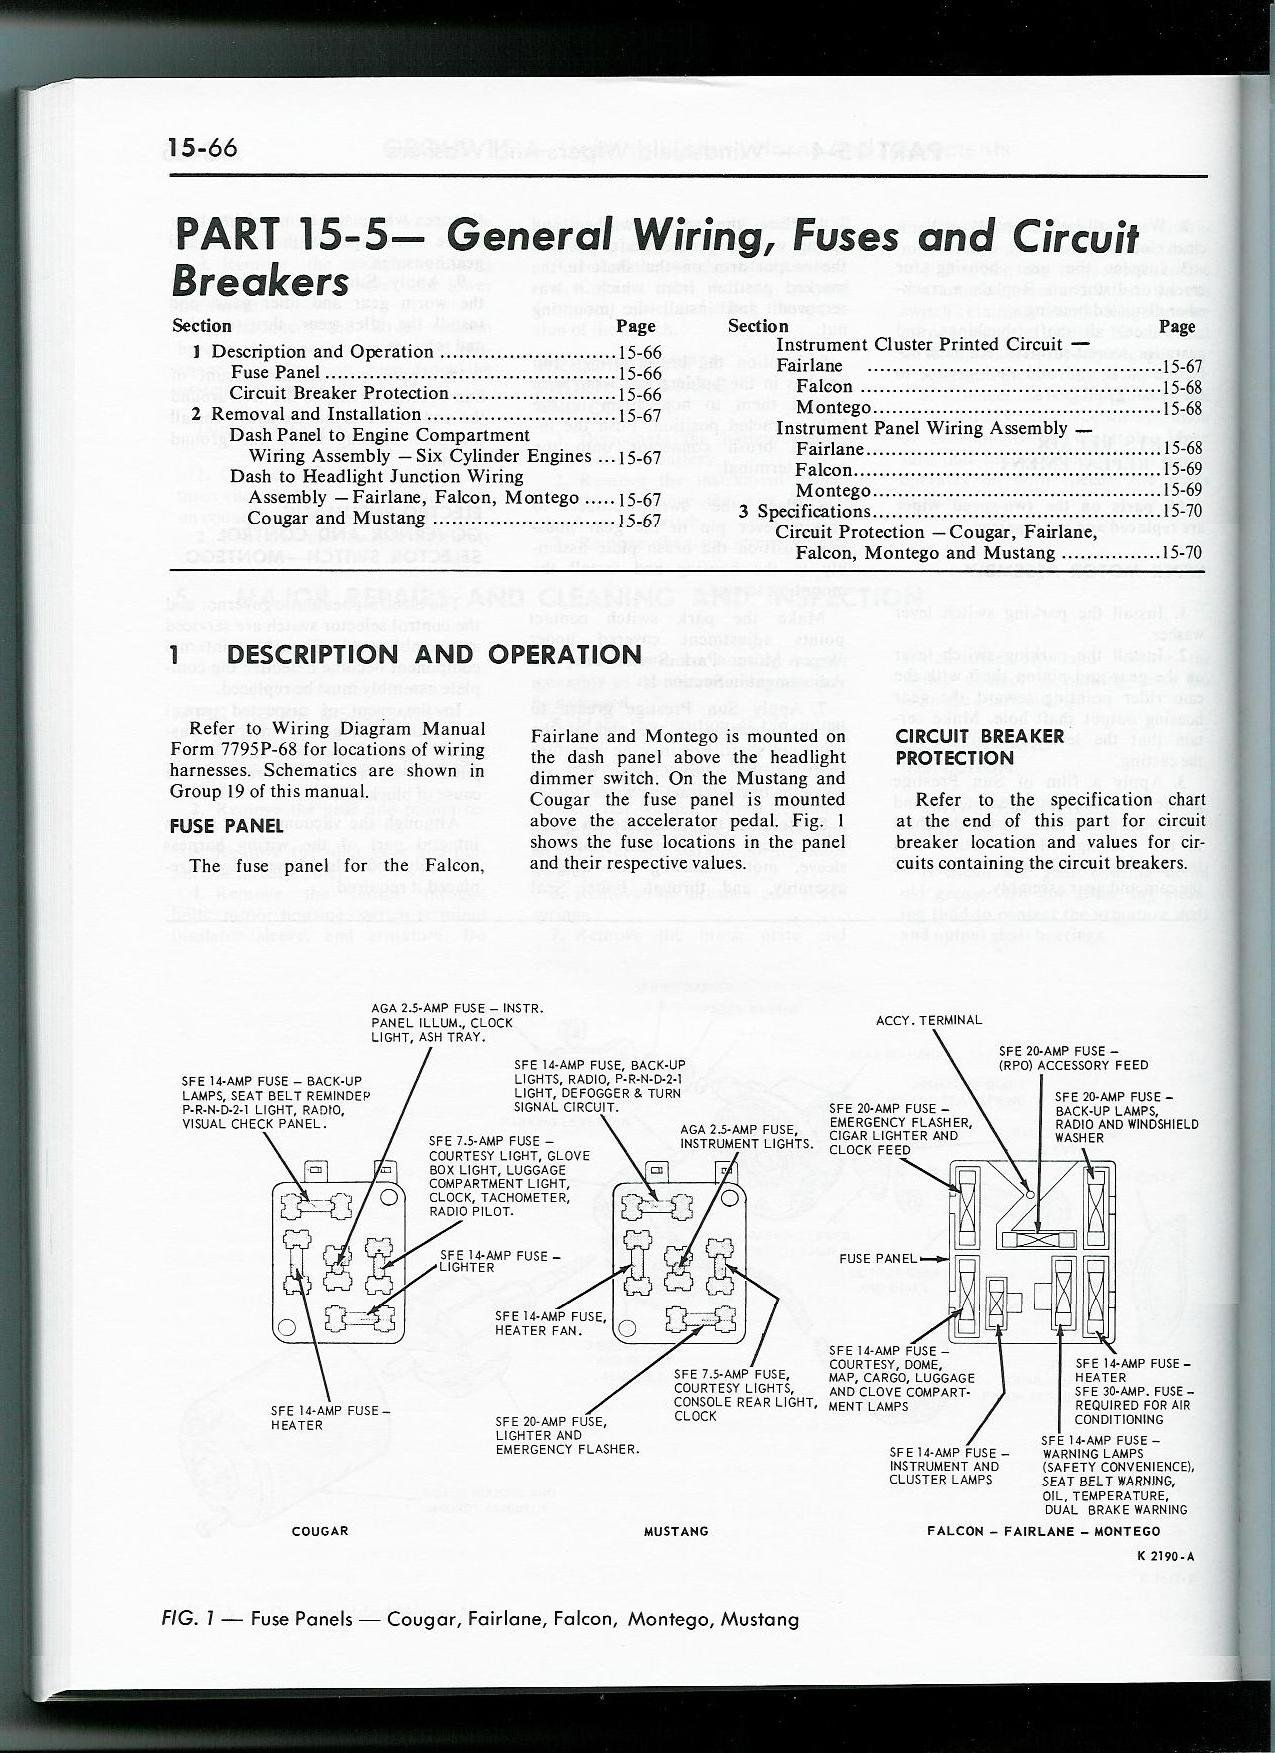 1965 mustang fuse panel fuse box diagram? ford mustang forum 1966 mustang fuse box diagram at 1966 Mustang Fuse Box Diagram